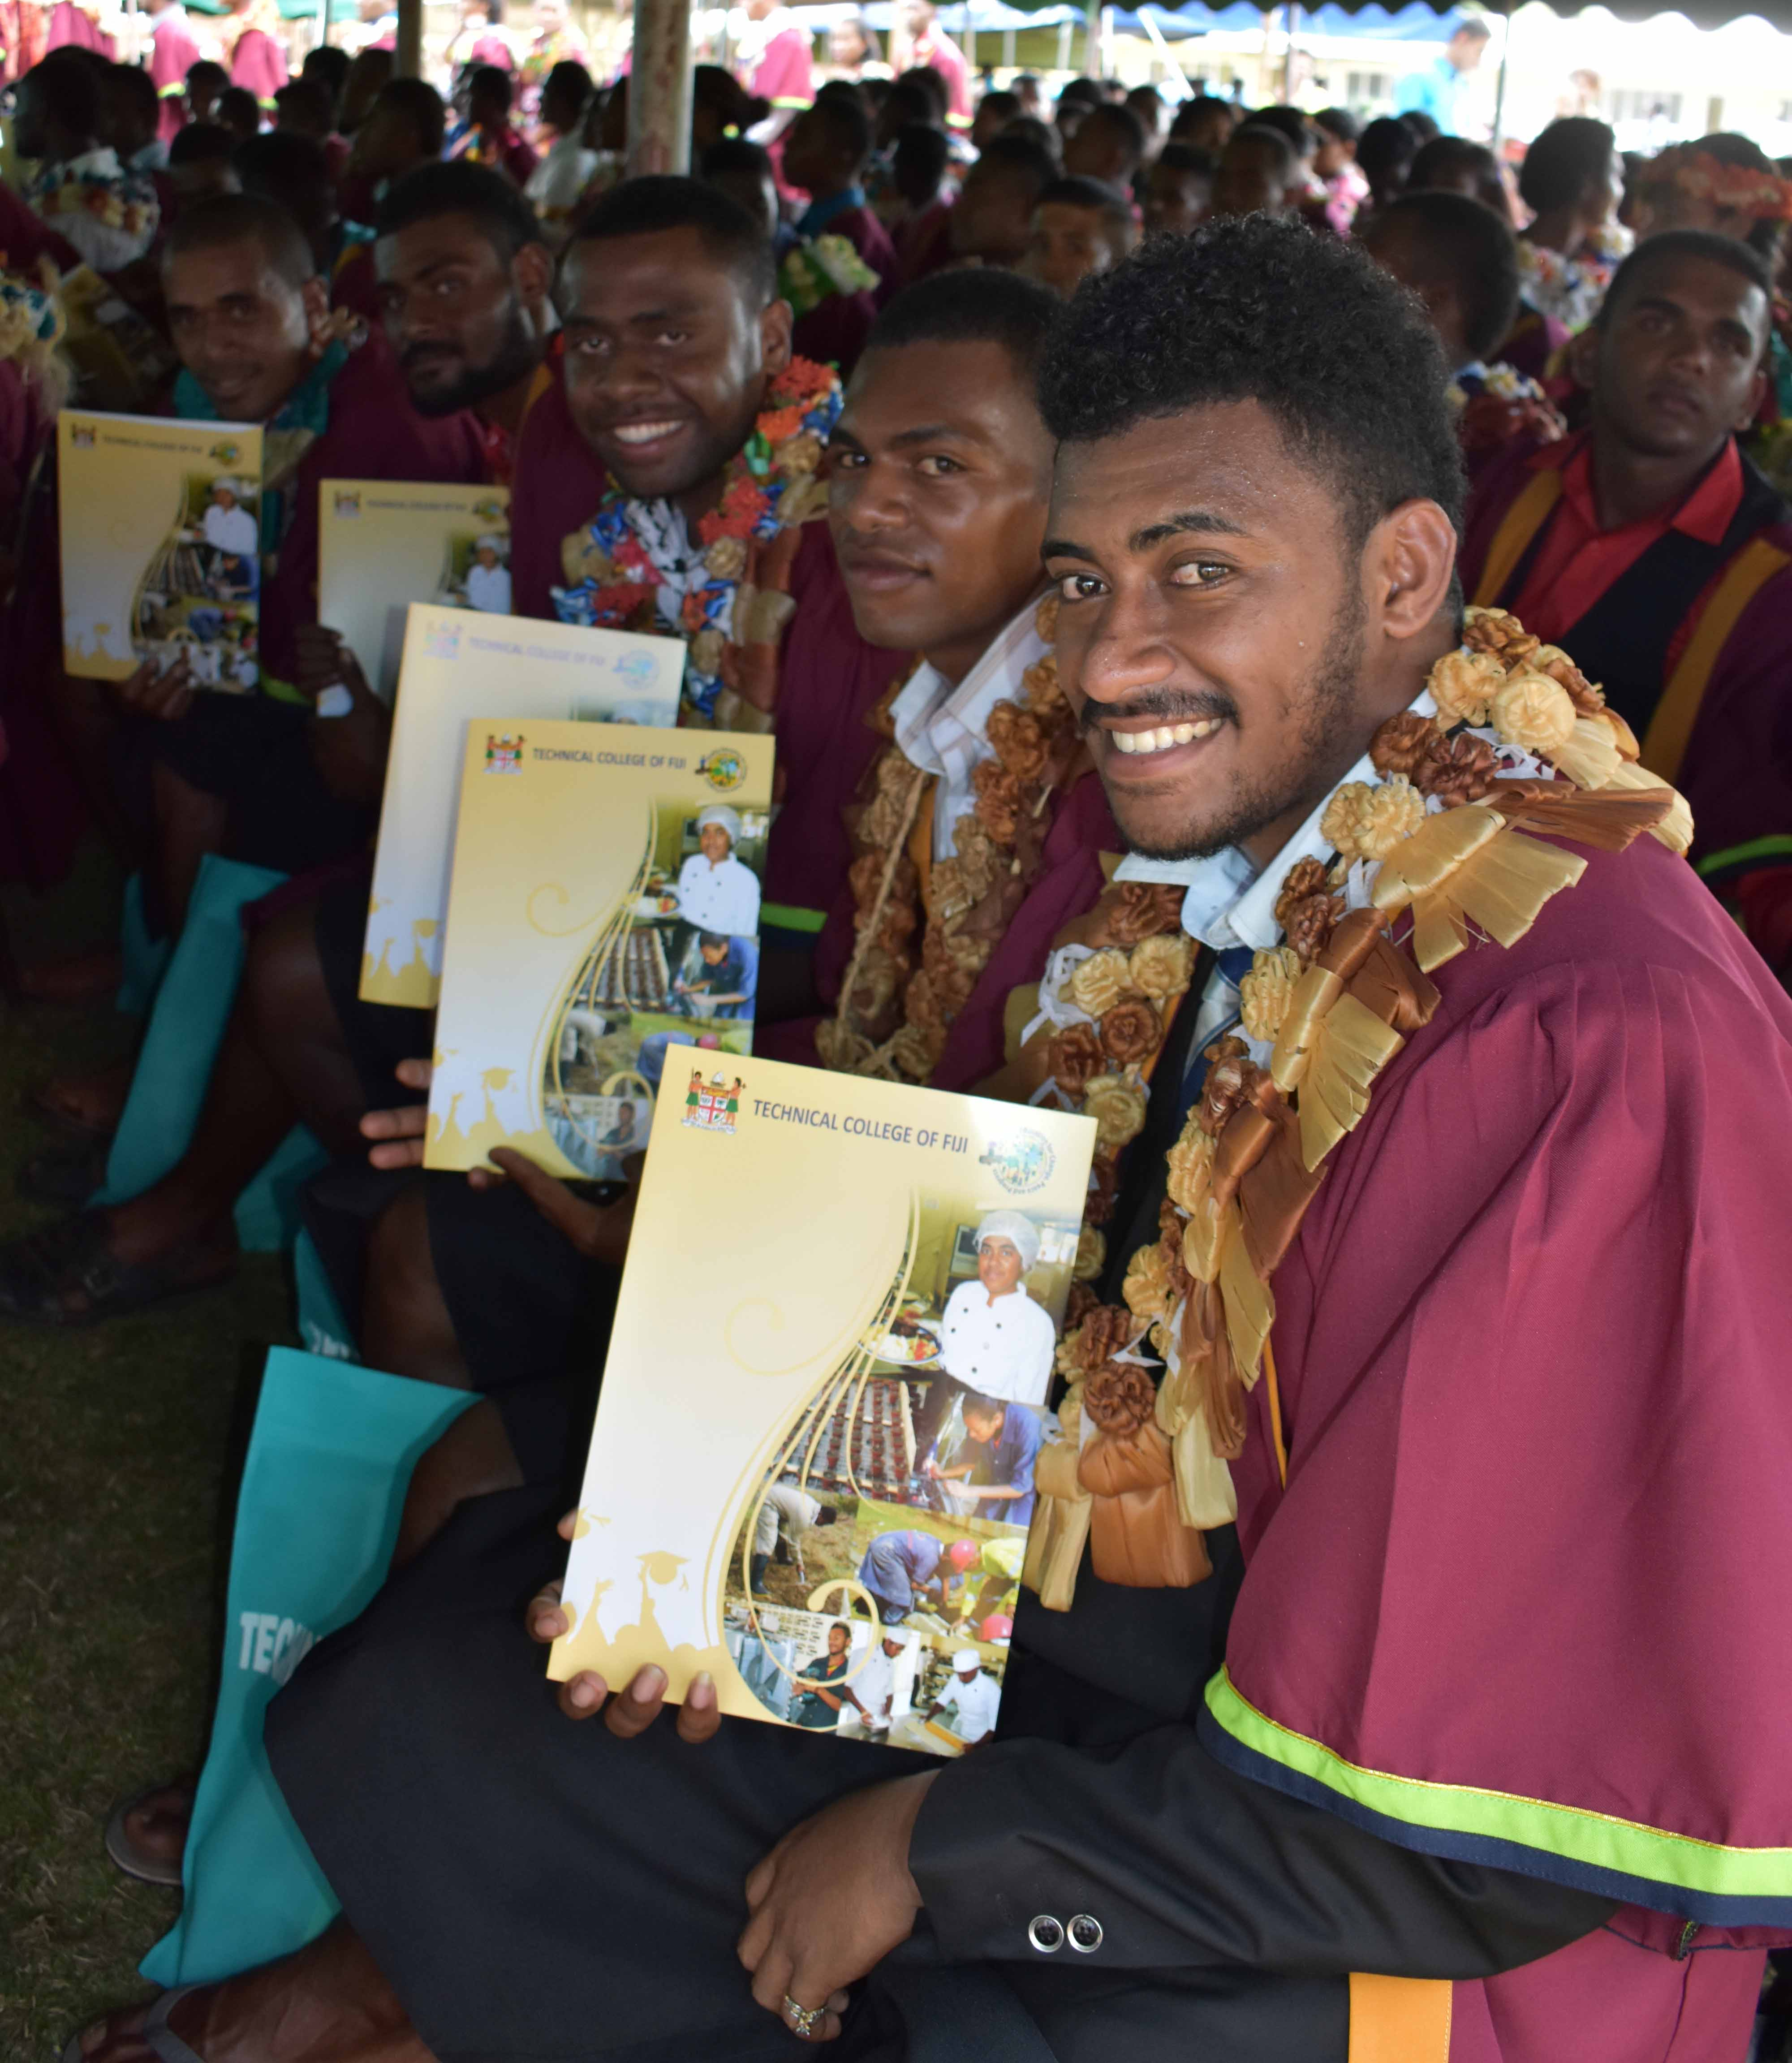 Students of Technical College of Fiji gathered during the graduation at Vanua Levu Arya Campus in Labasa on July 22, 2017. Photo:SHRATIKA SINGH